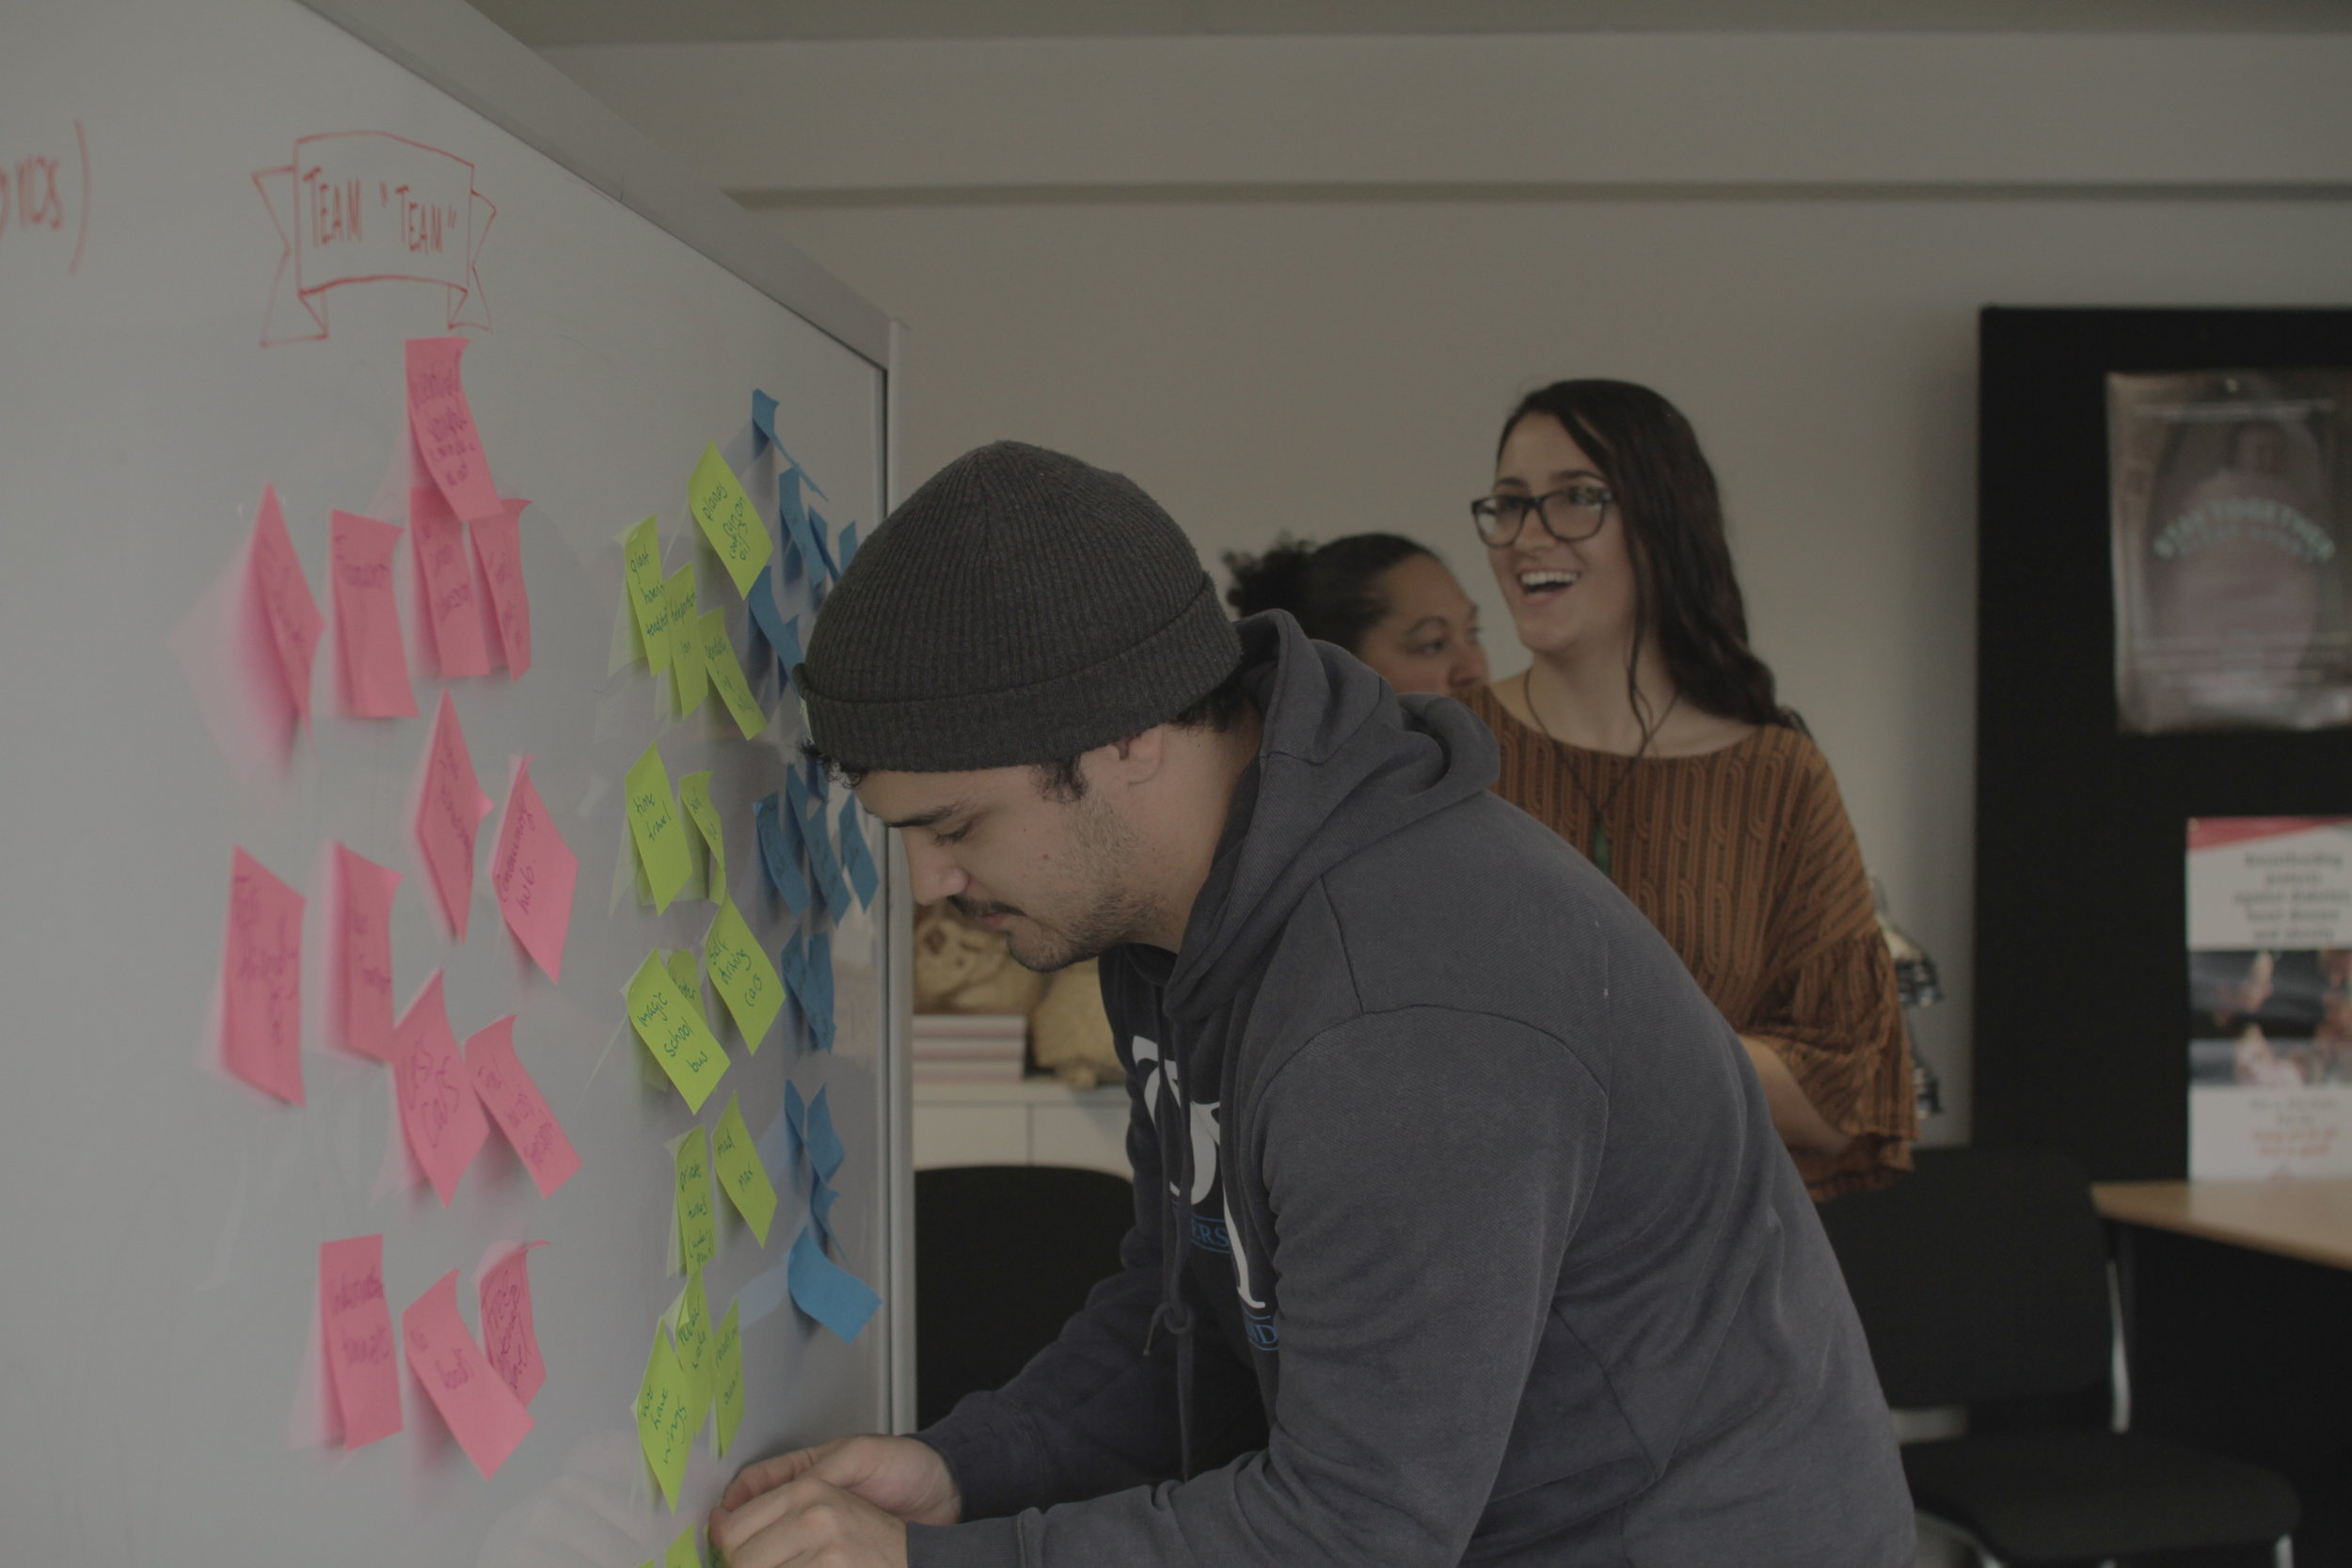 Getting the community involved in design.